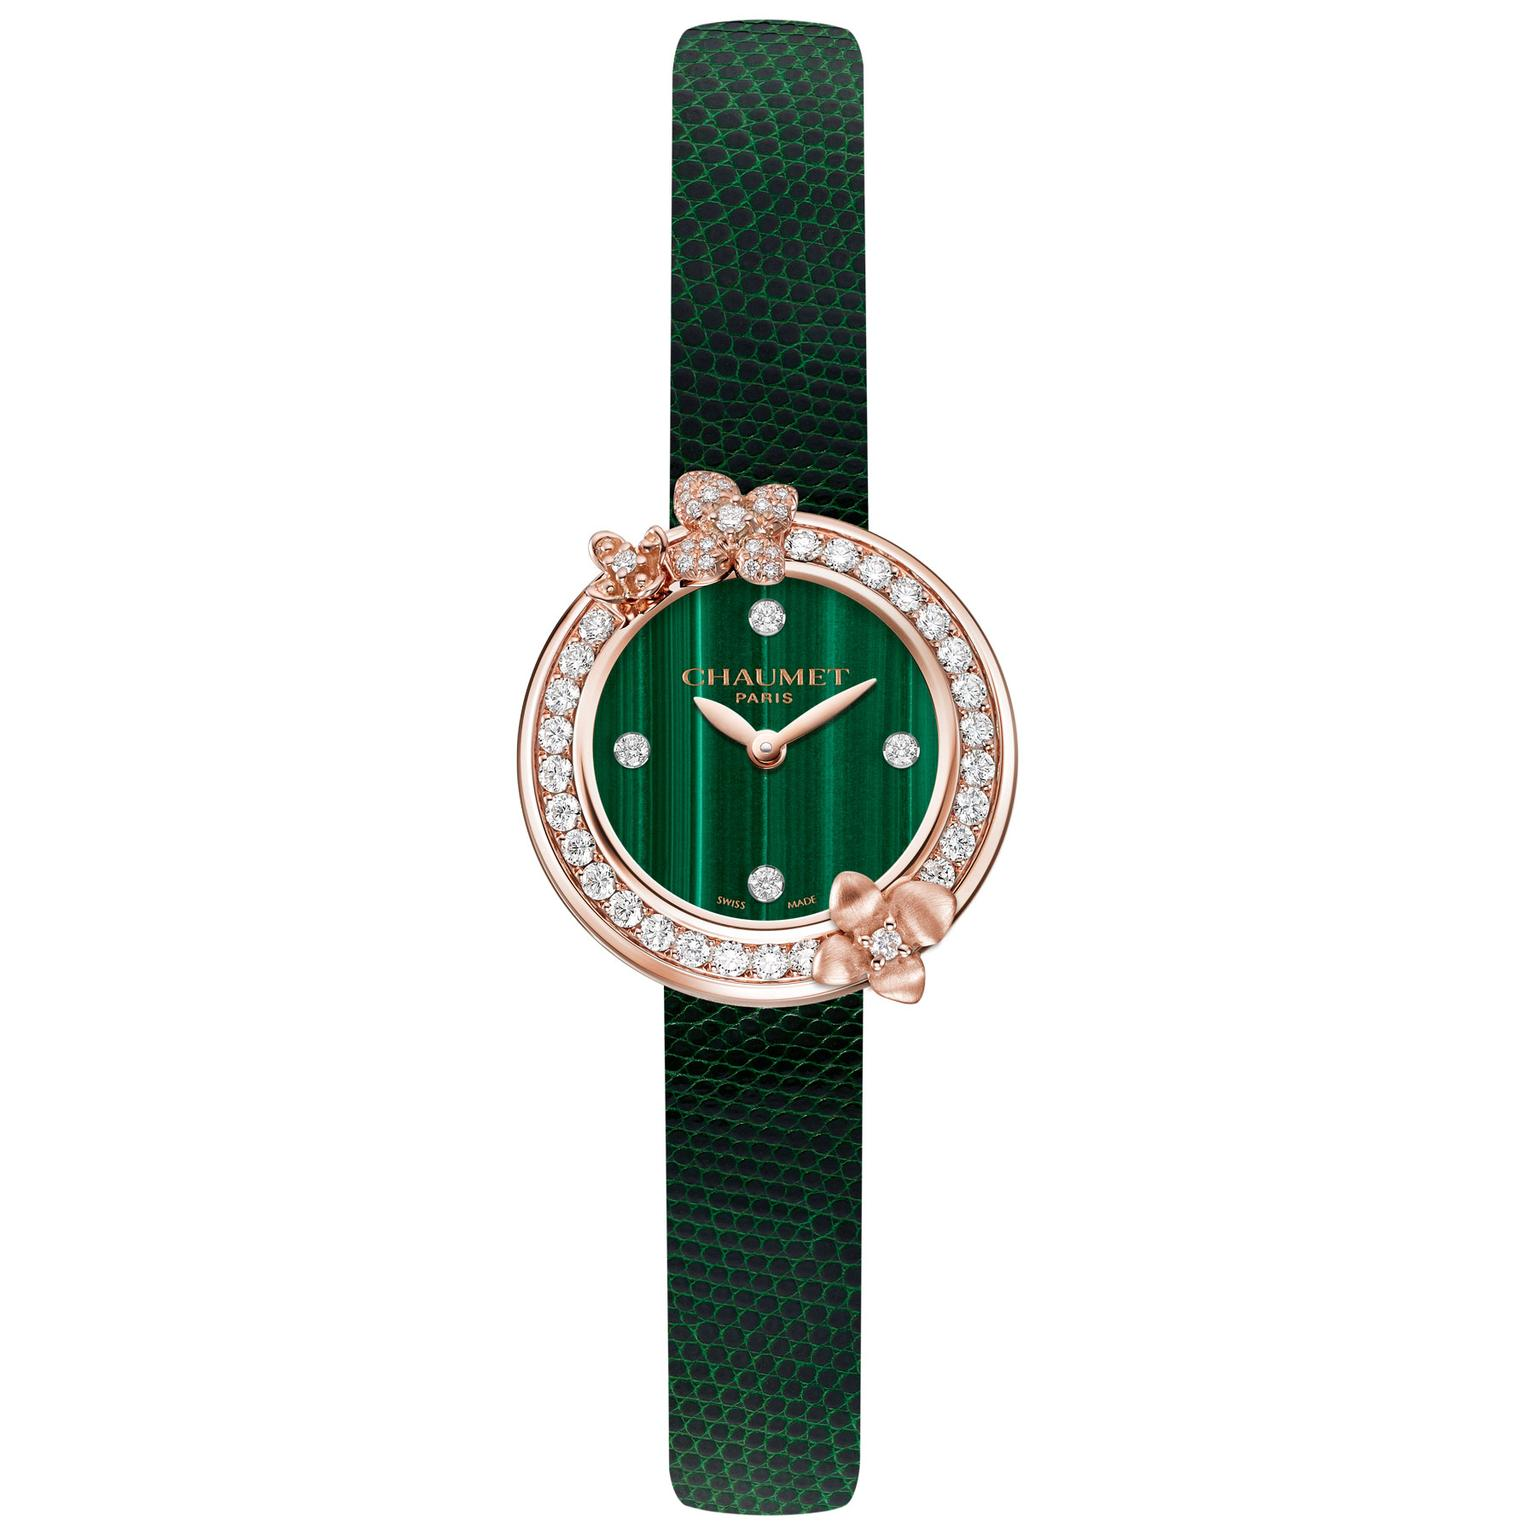 Hortensia Eden watch with malachite dial